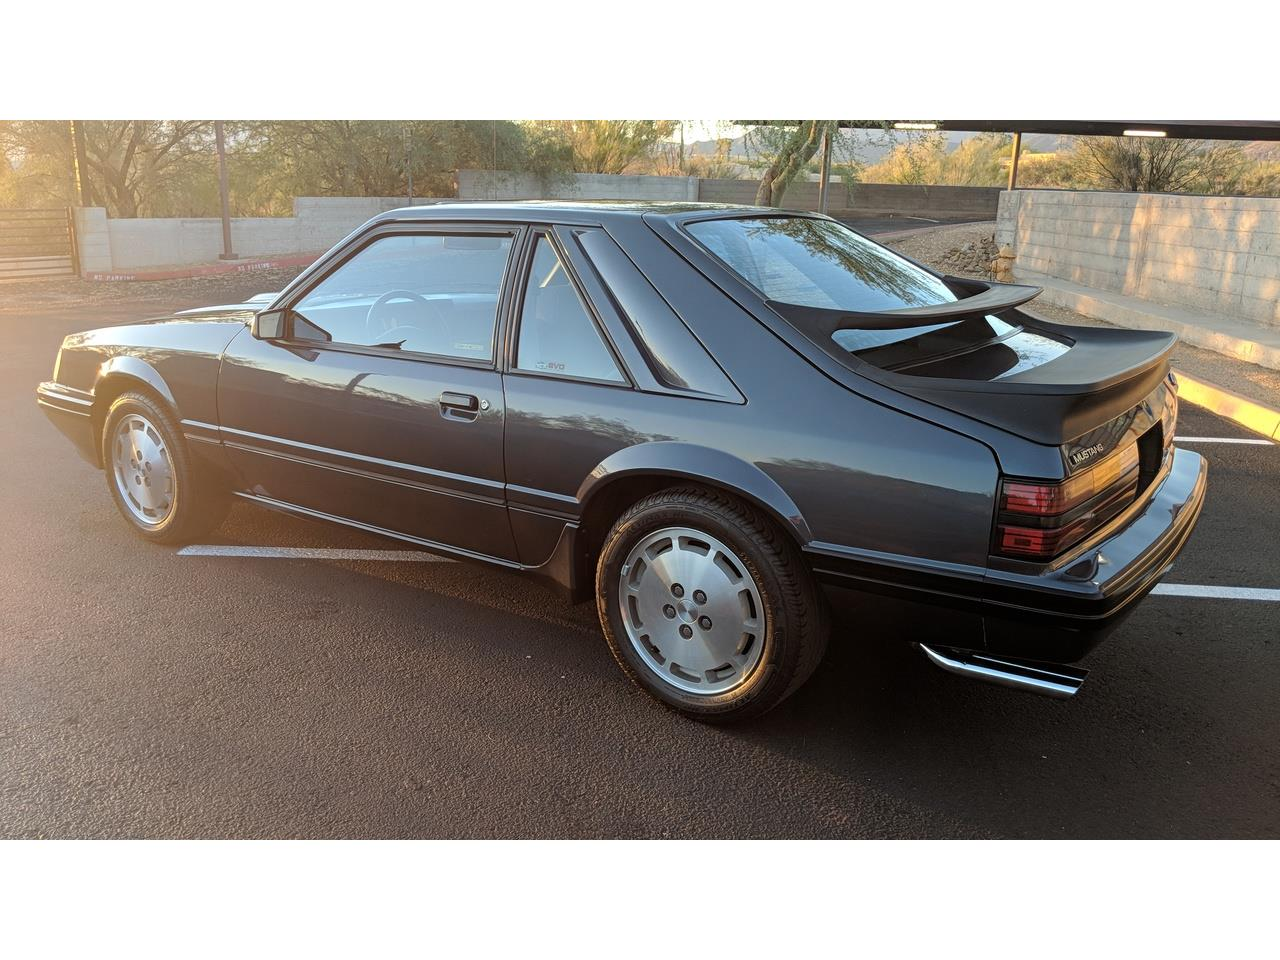 Large Picture of 1984 Ford Mustang SVO located in North Phoenix Arizona - $15,800.00 - MXZ6